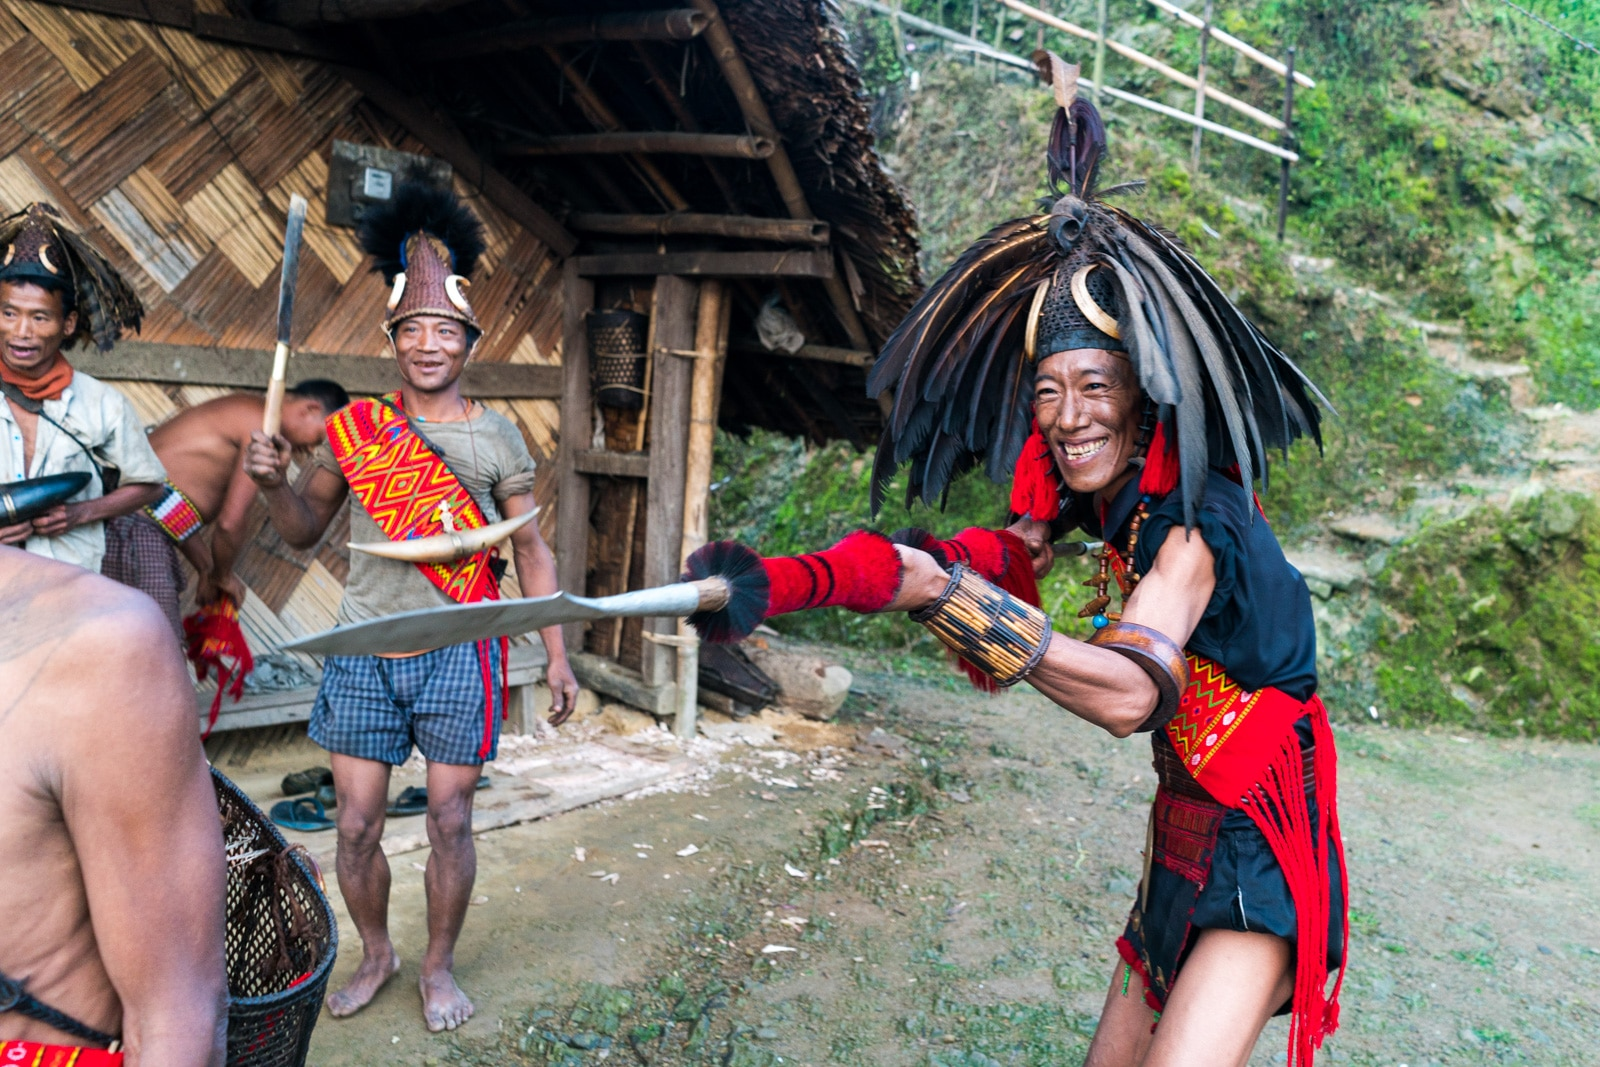 Snapshots of traditional culture in Longwa village, Nagaland, Northeast India - Nyakto playing around with a spear - Lost With Purpose